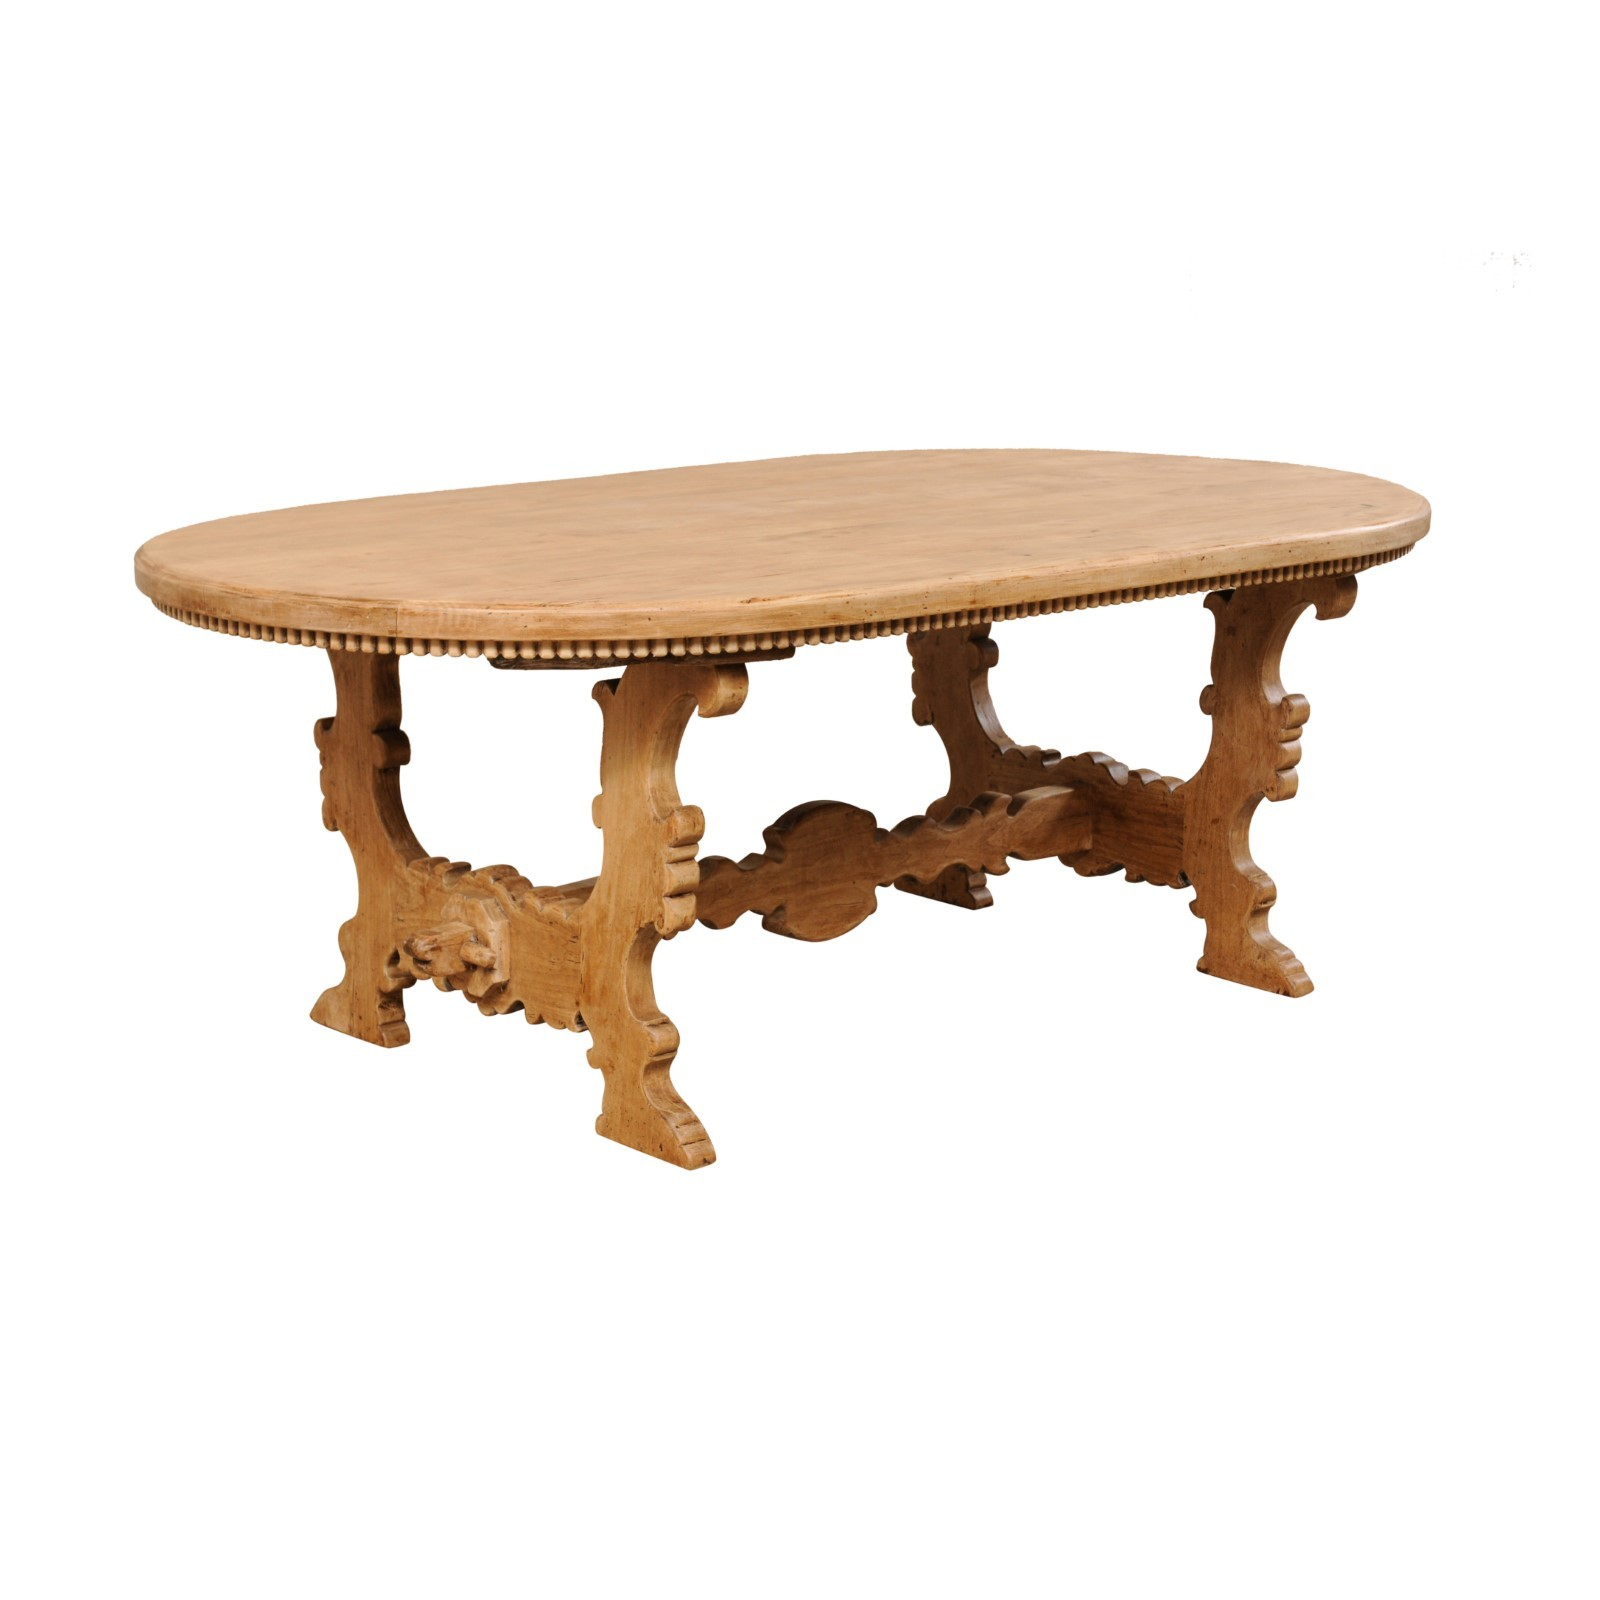 Nicely Carved & Trimmed Oval Trestle Table